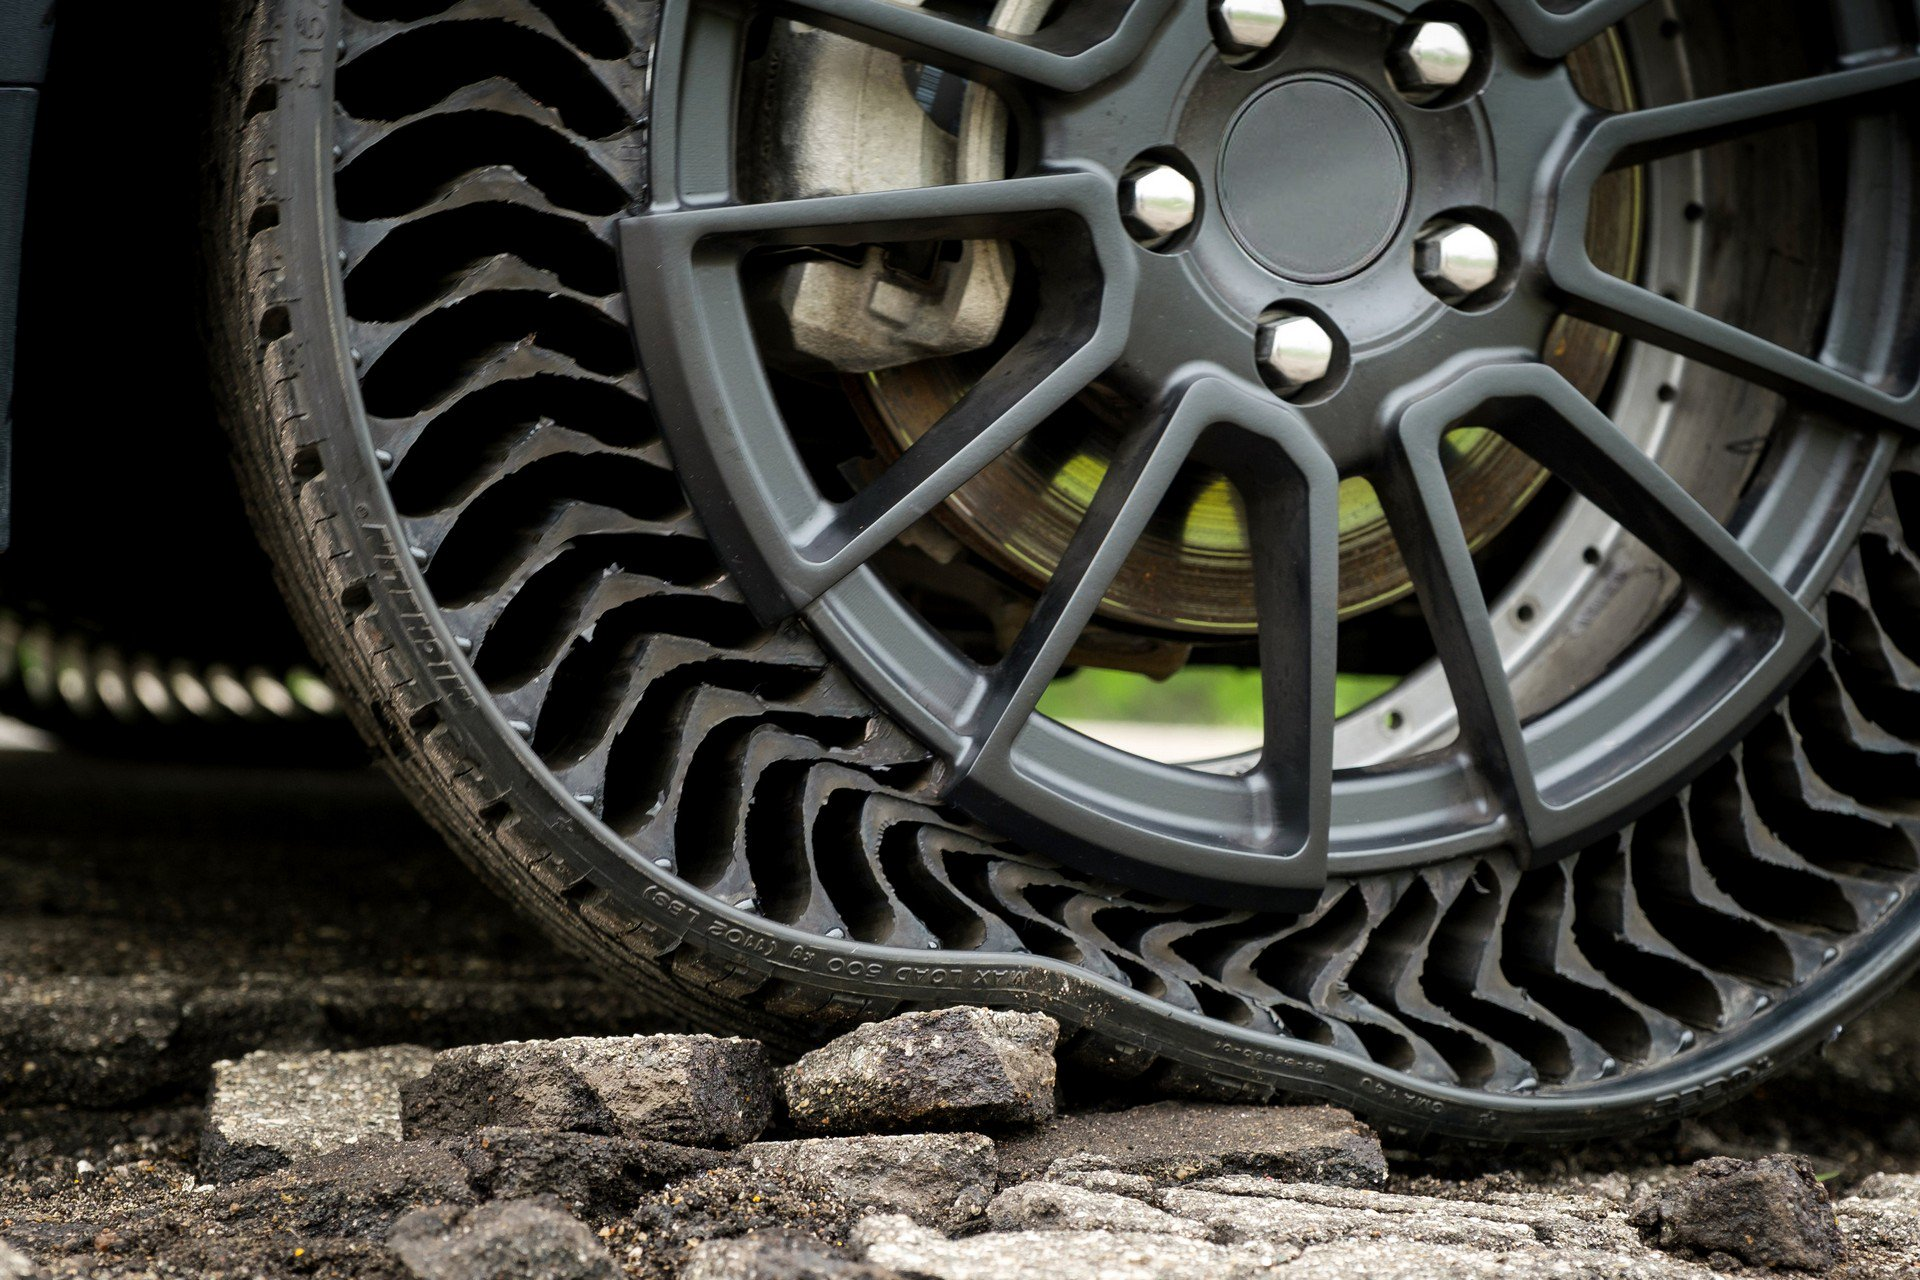 cb19cbb5-gm-and-michelin-airless-tires-4